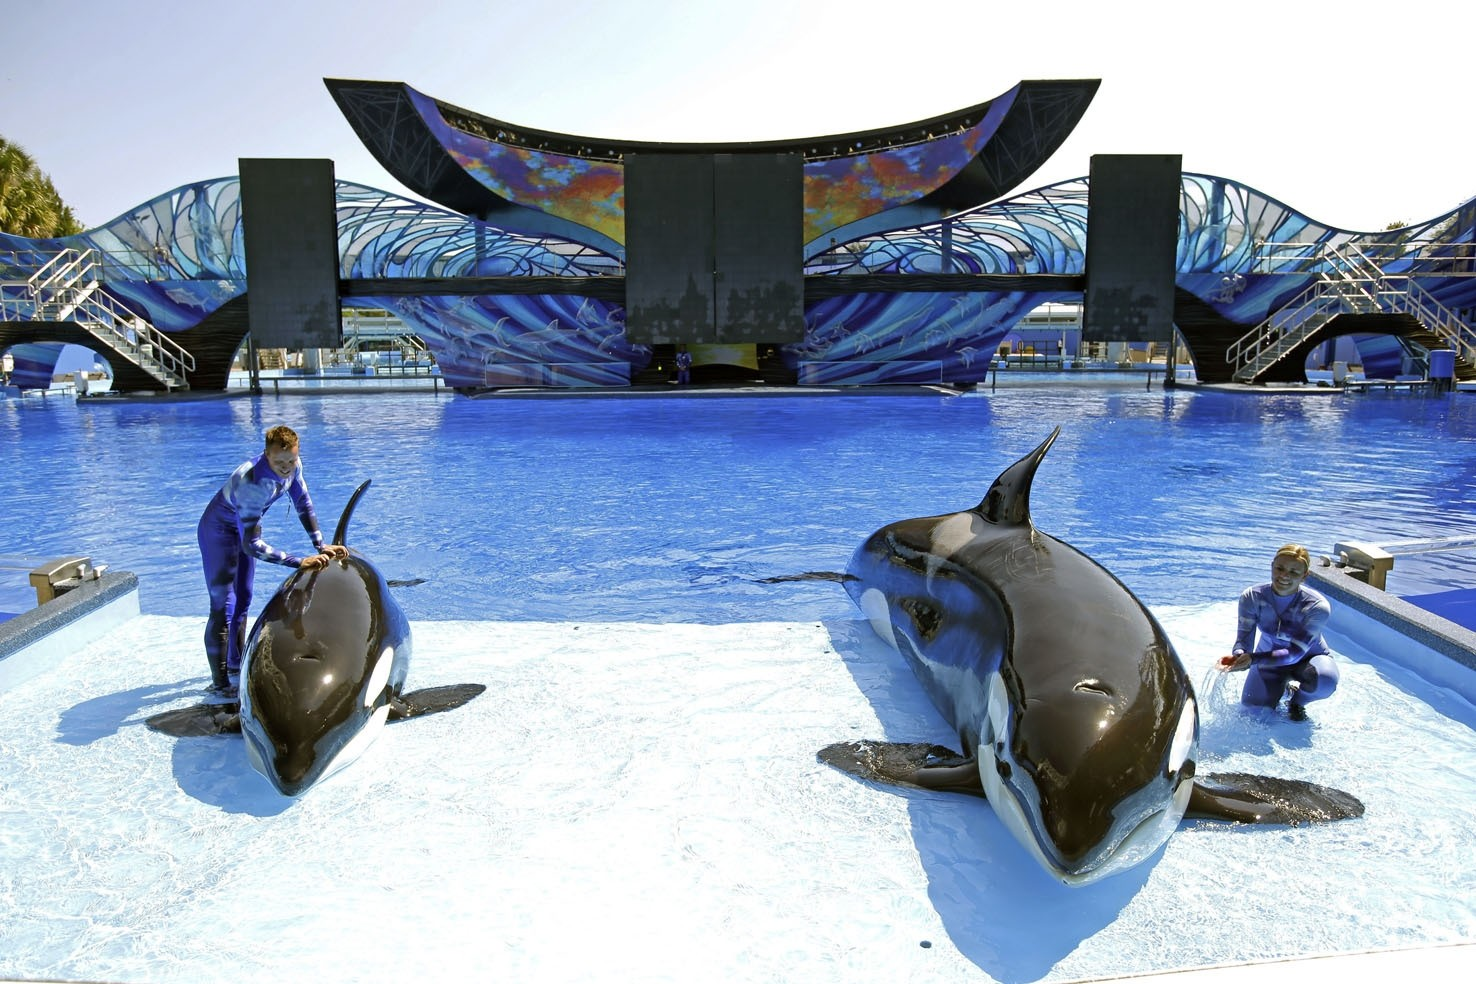 The theme park in Abu Dhabi will be the first SeaWorld park outside the United States and without orcas.